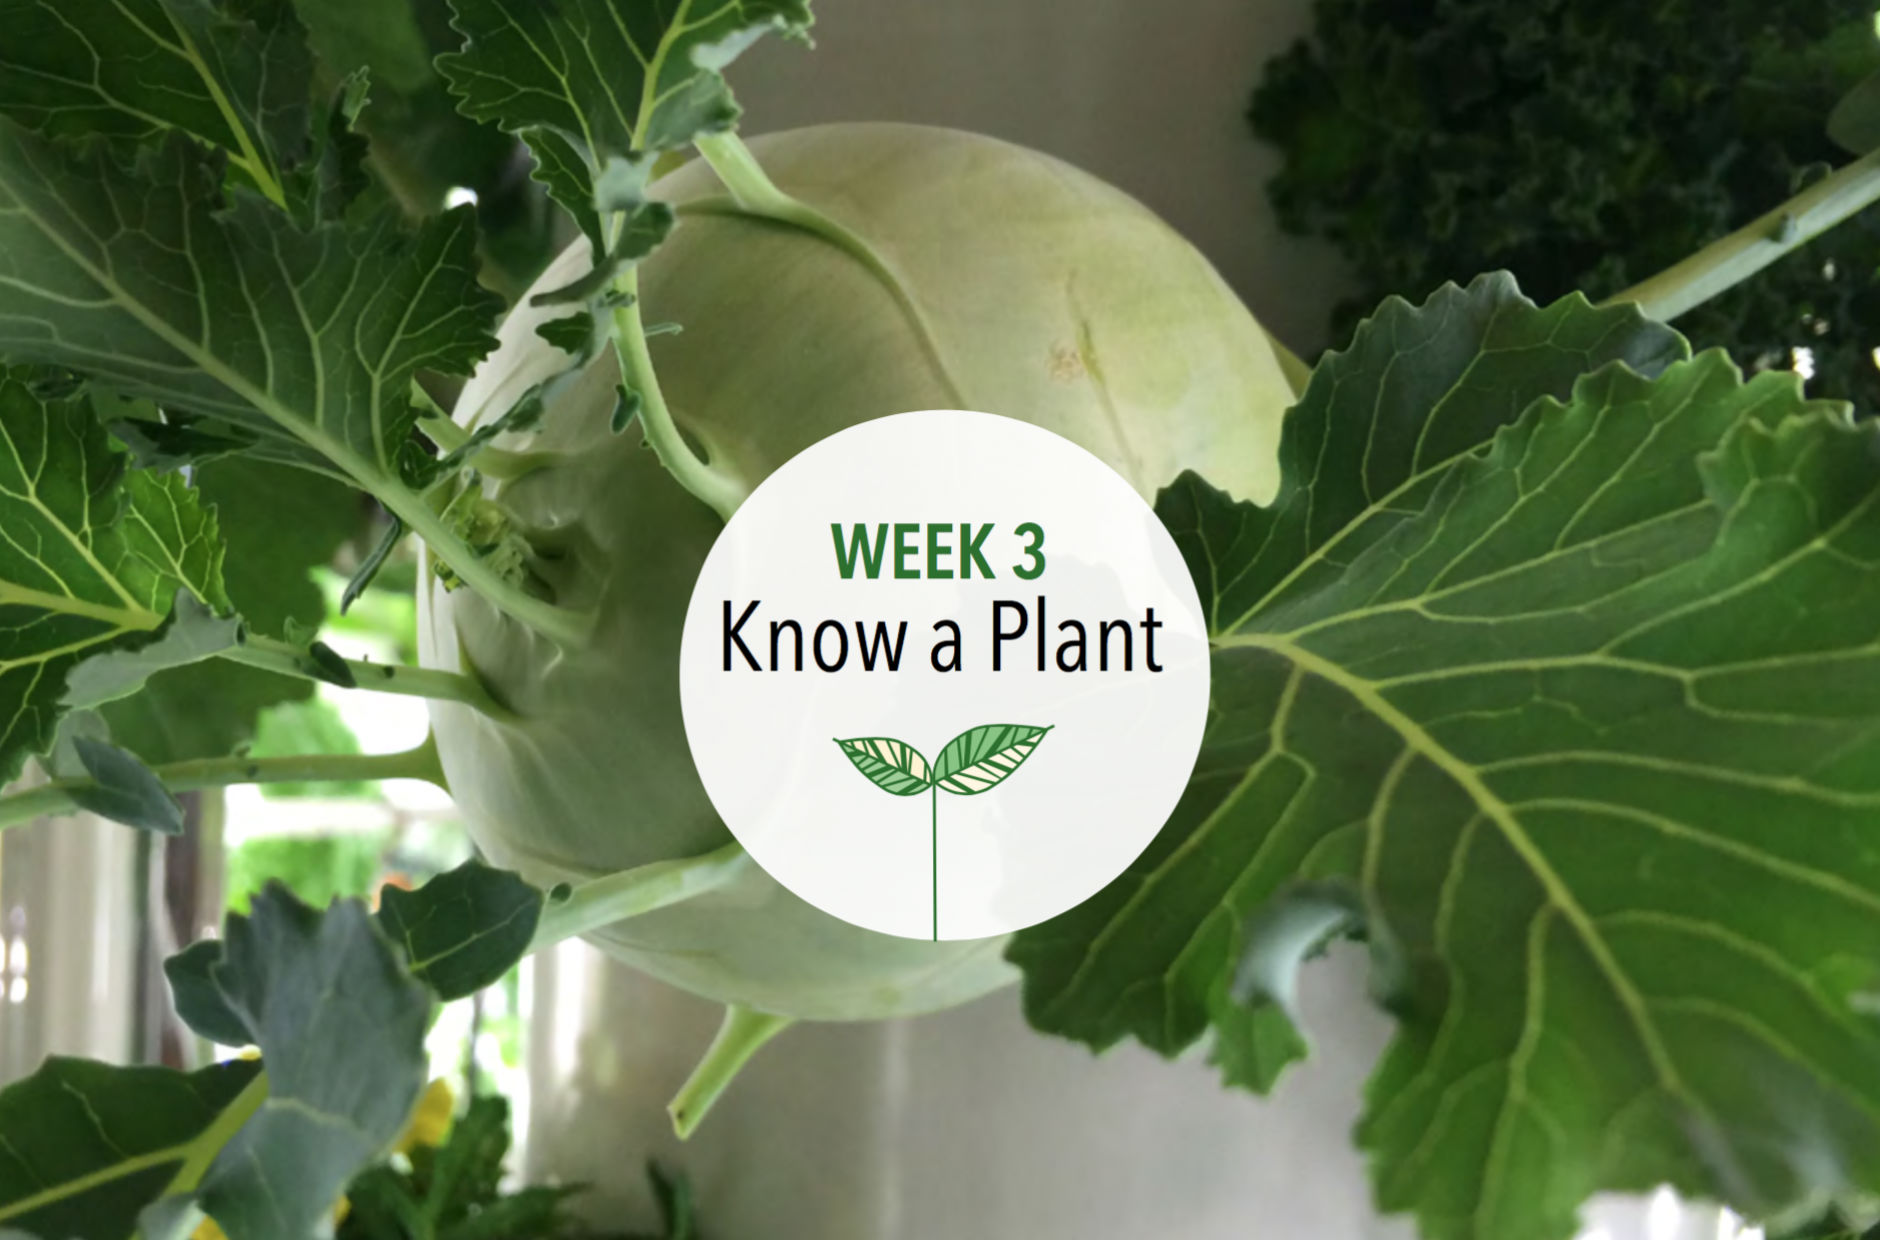 Week 3: Know a Plant